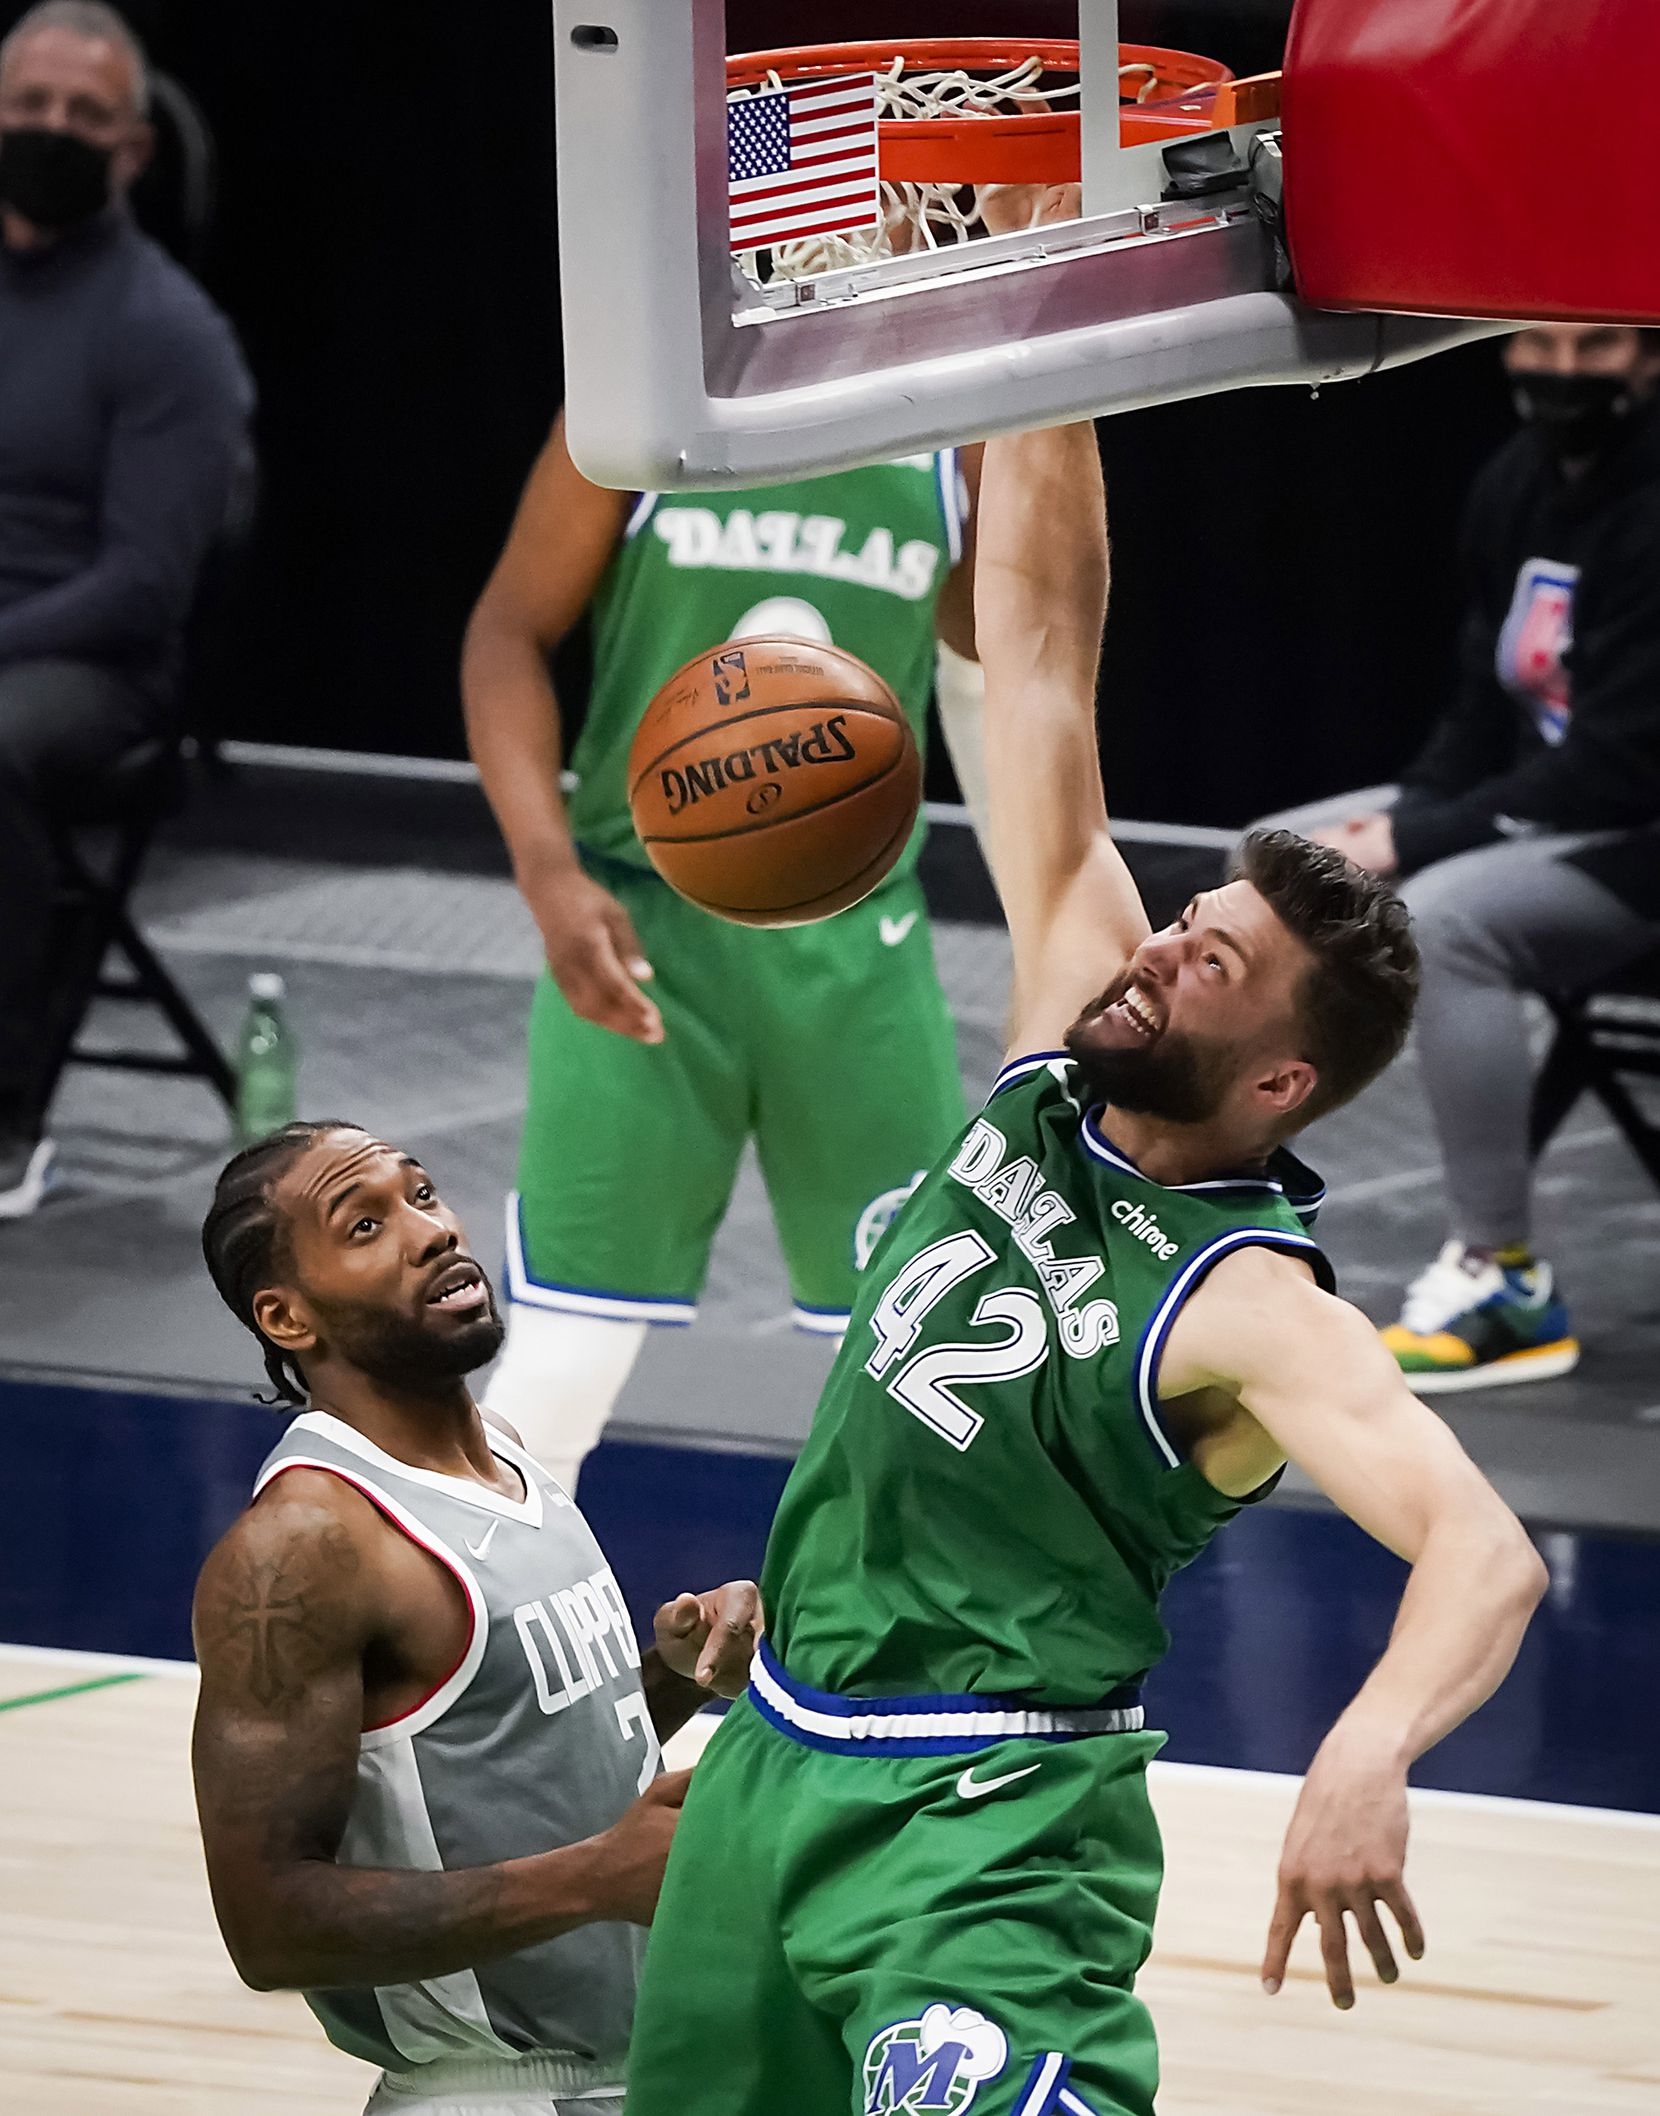 Dallas Mavericks forward Maxi Kleber (42) goes up for a slam dunk over LA Clippers forward Kawhi Leonard (2) during the second half of an NBA basketball game at American Airlines Center on Wednesday, March 17, 2021, in Dallas.